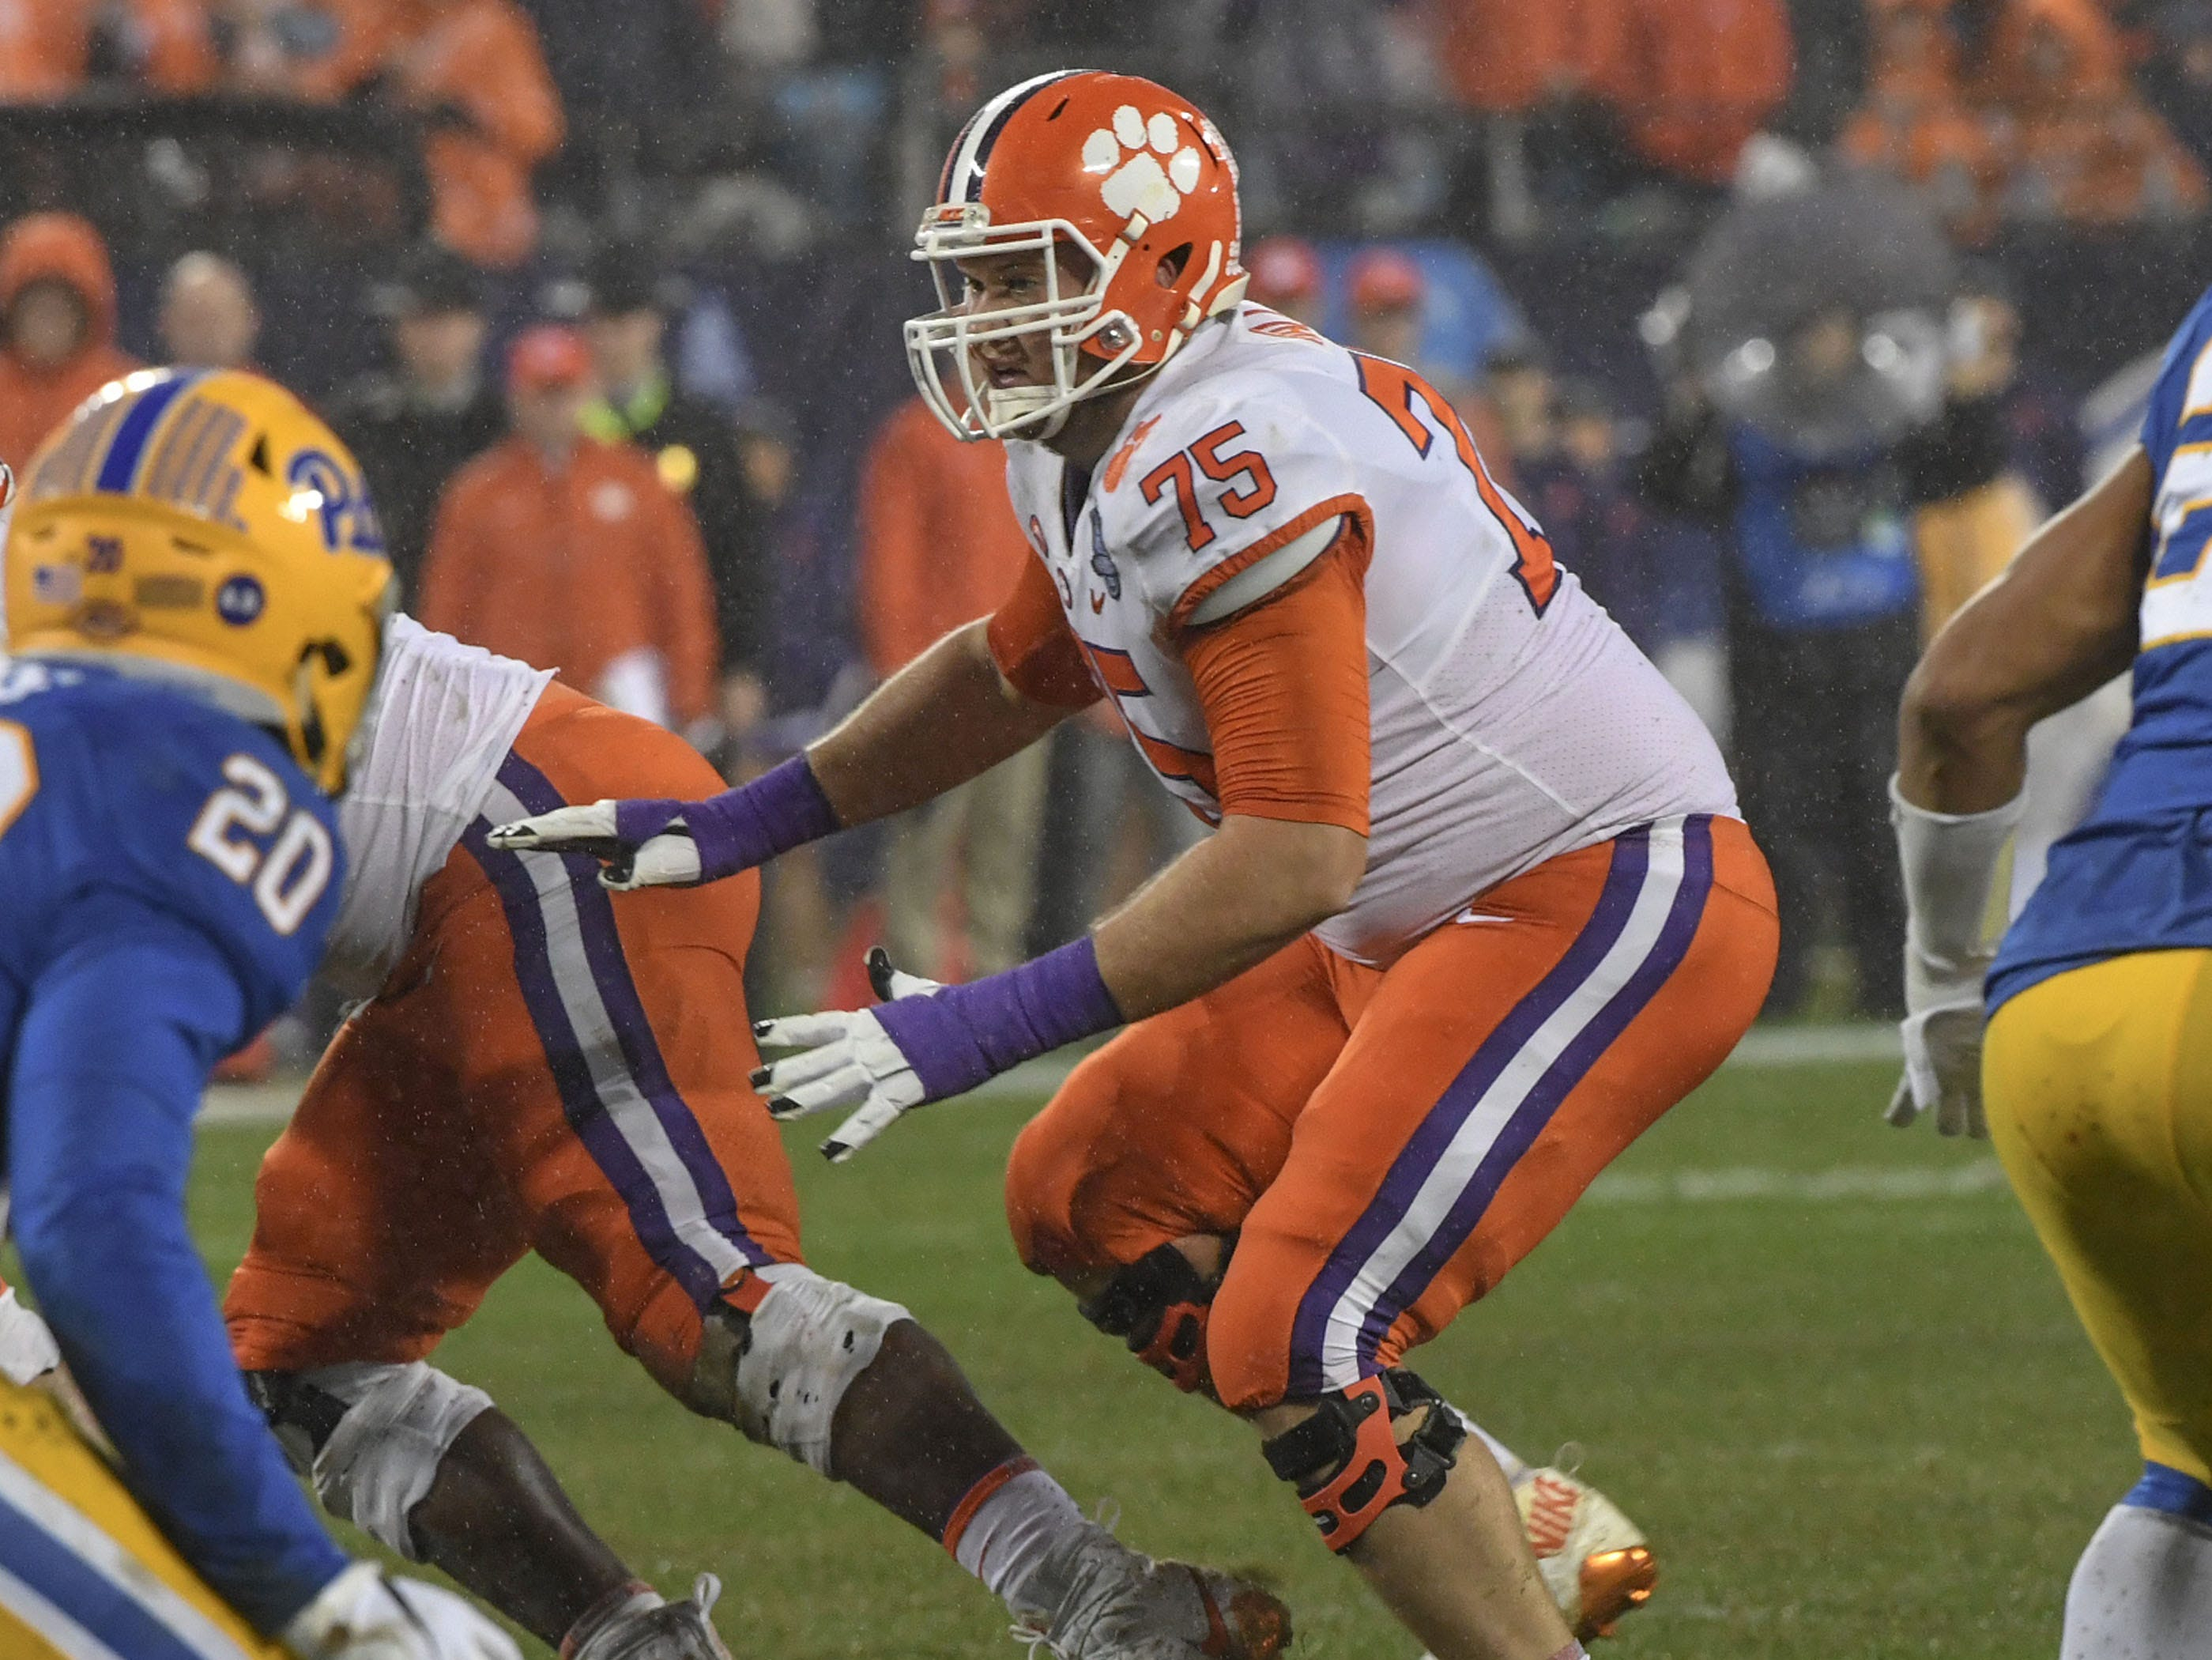 Clemson offensive lineman Mitch Hyatt (75) blocks against Pittsburgh during the third quarter of the Dr. Pepper ACC football championship at Bank of America Stadium in Charlotte, N.C. on Saturday, December 1, 2018.